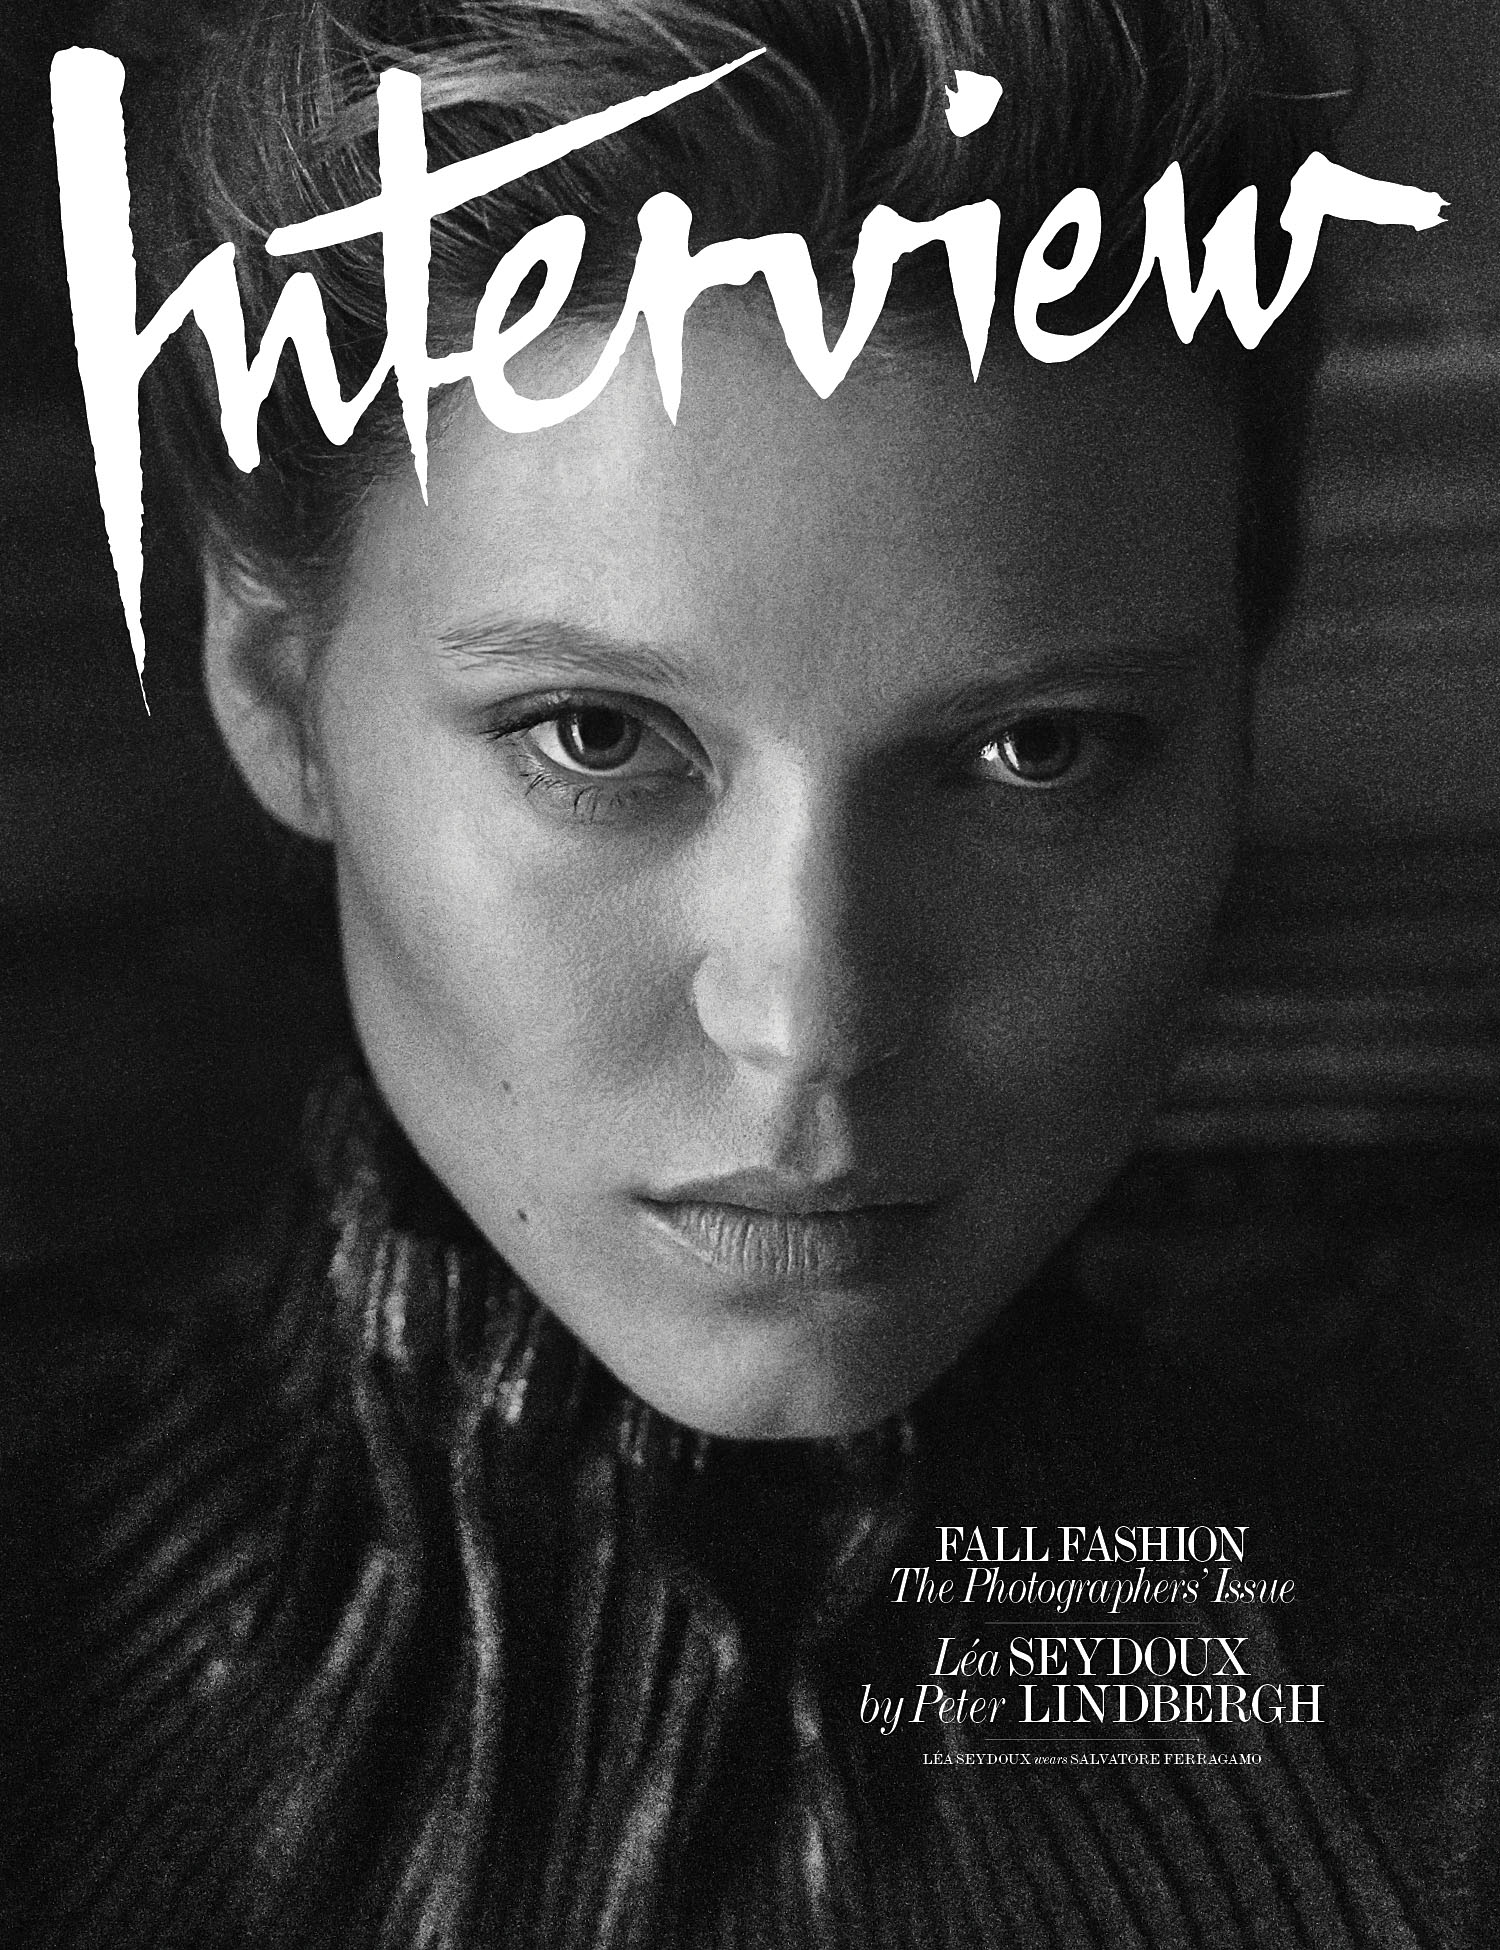 lc3a9a-seydoux-by-peter-lindbergh-for-interview-magazine-september-2014